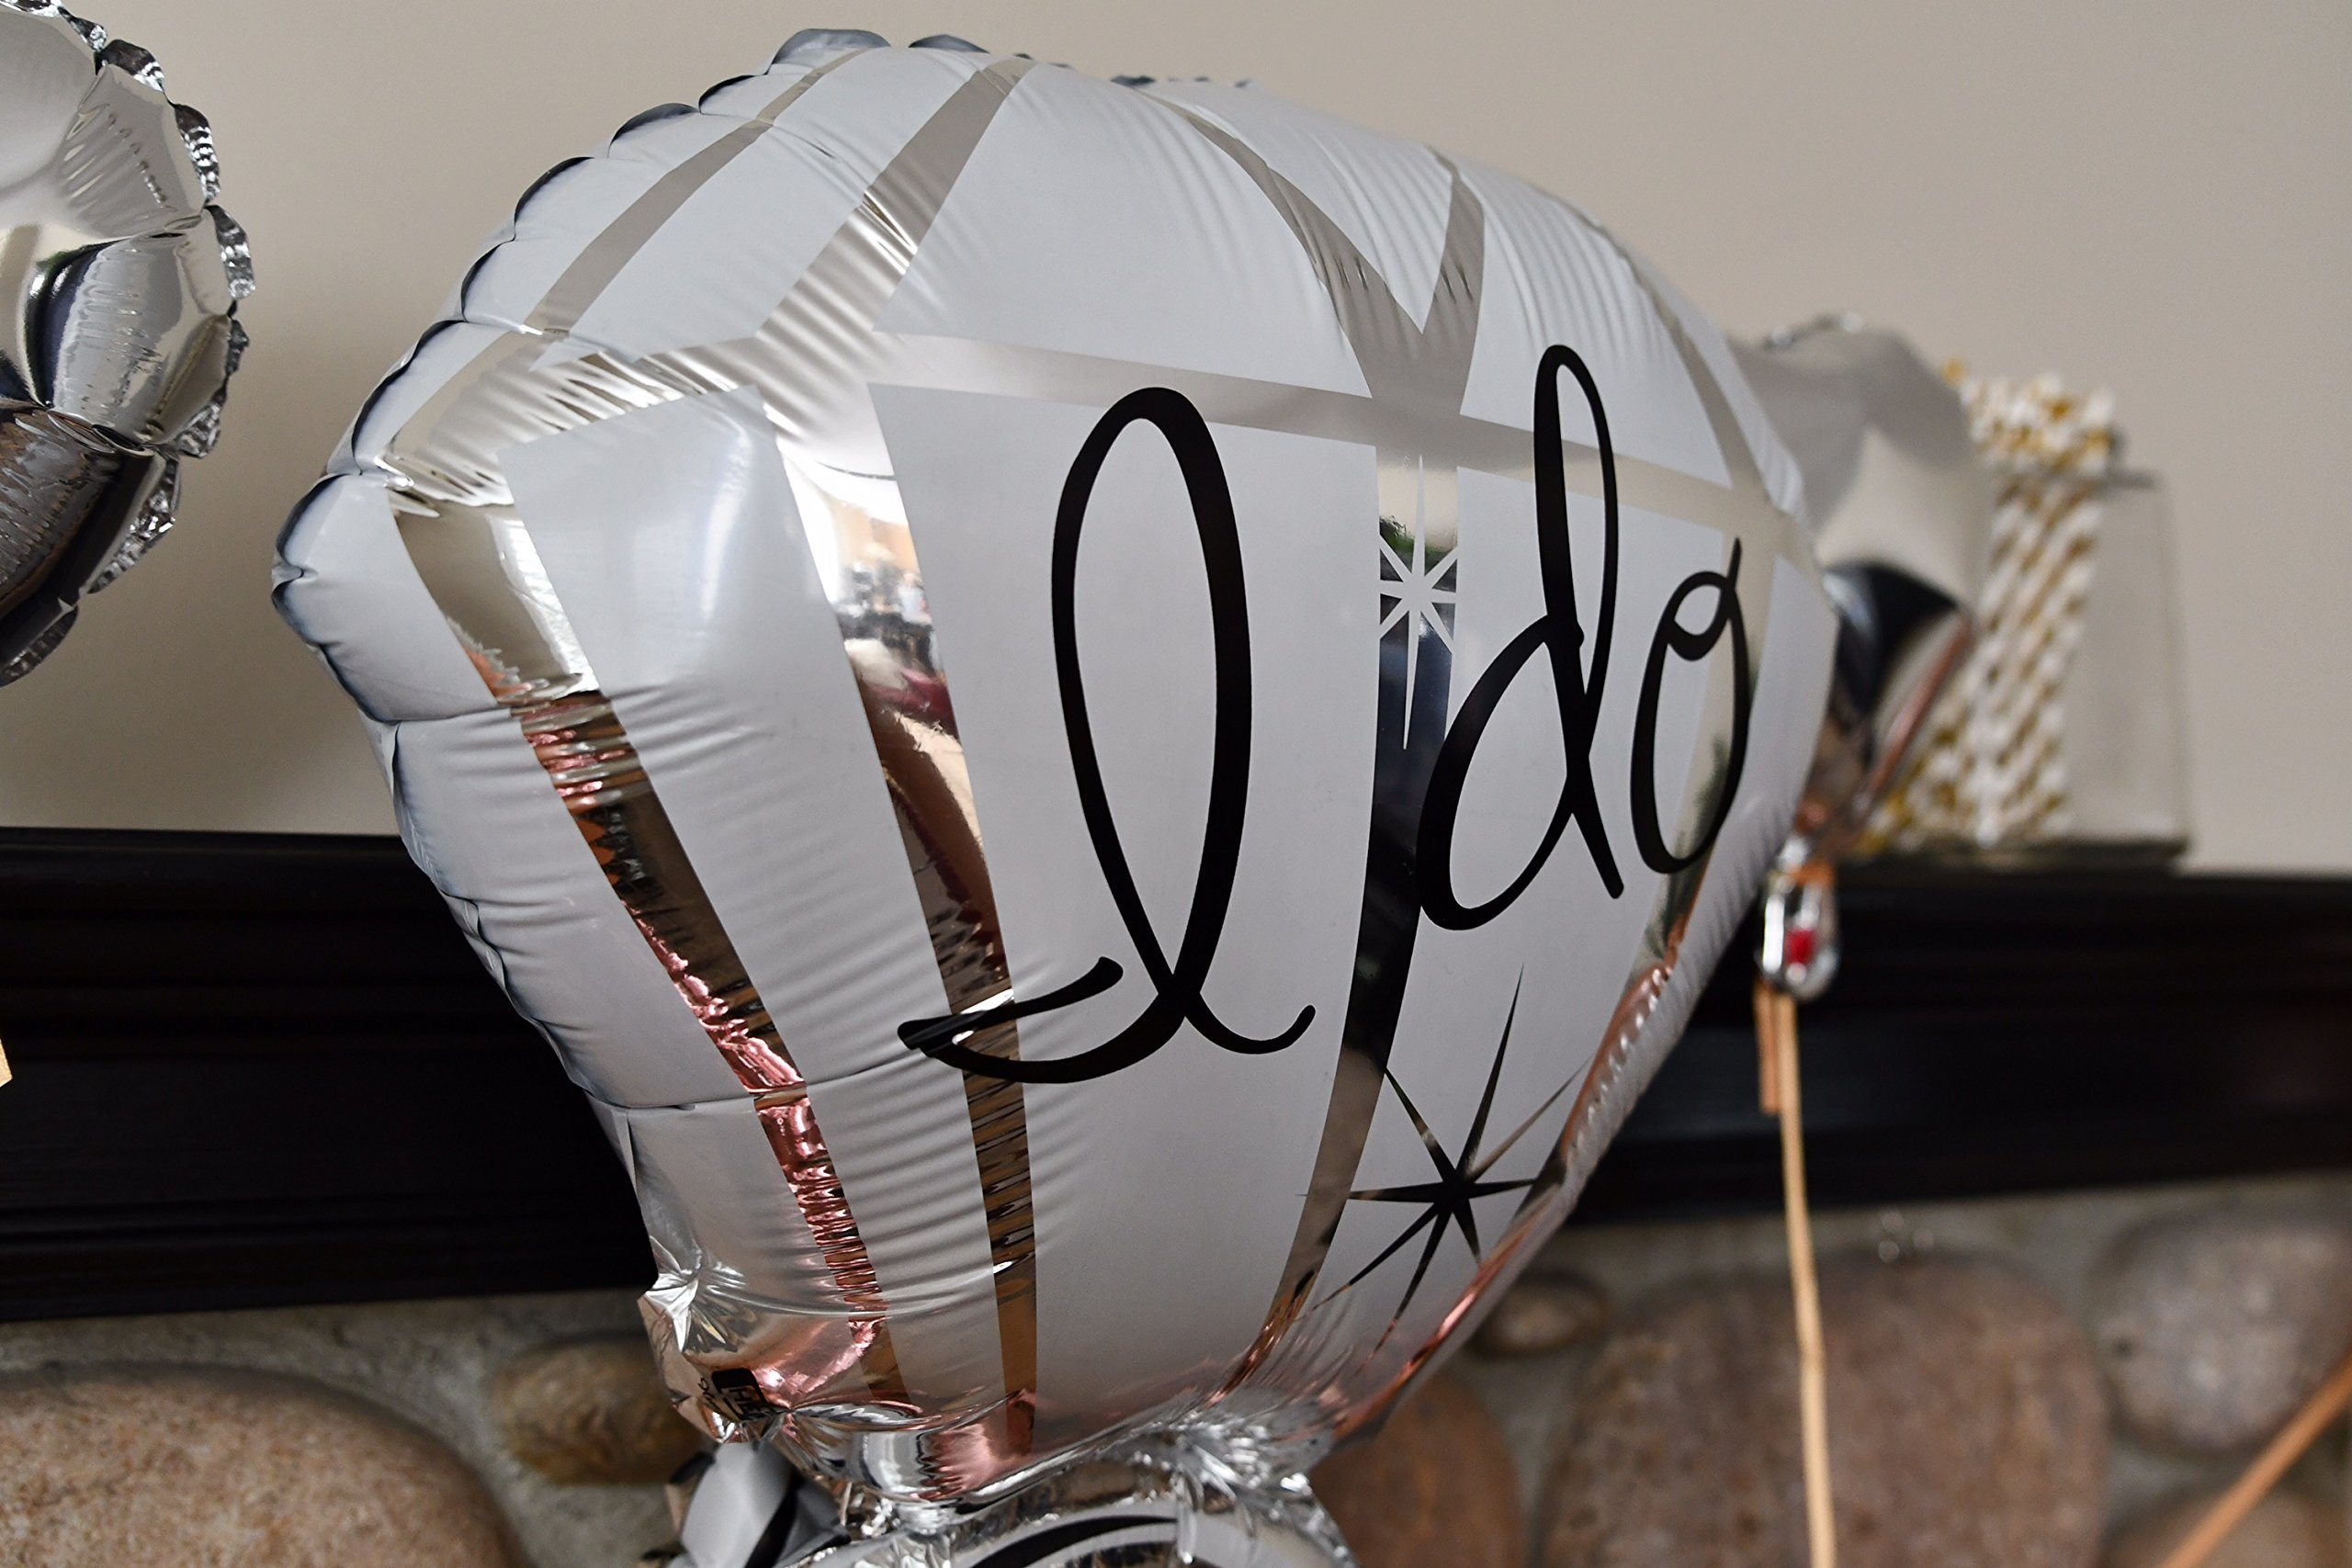 Bachelorette Party Decorations Pack - Rose Gold Party Supply Kit with Rose Gold, White Pearl and Silver Heart Balloons + Rose Gold Straws + The Bride Sash + Bride Foil Banner and Diamond Ring Balloon by Party Simple (Image #9)